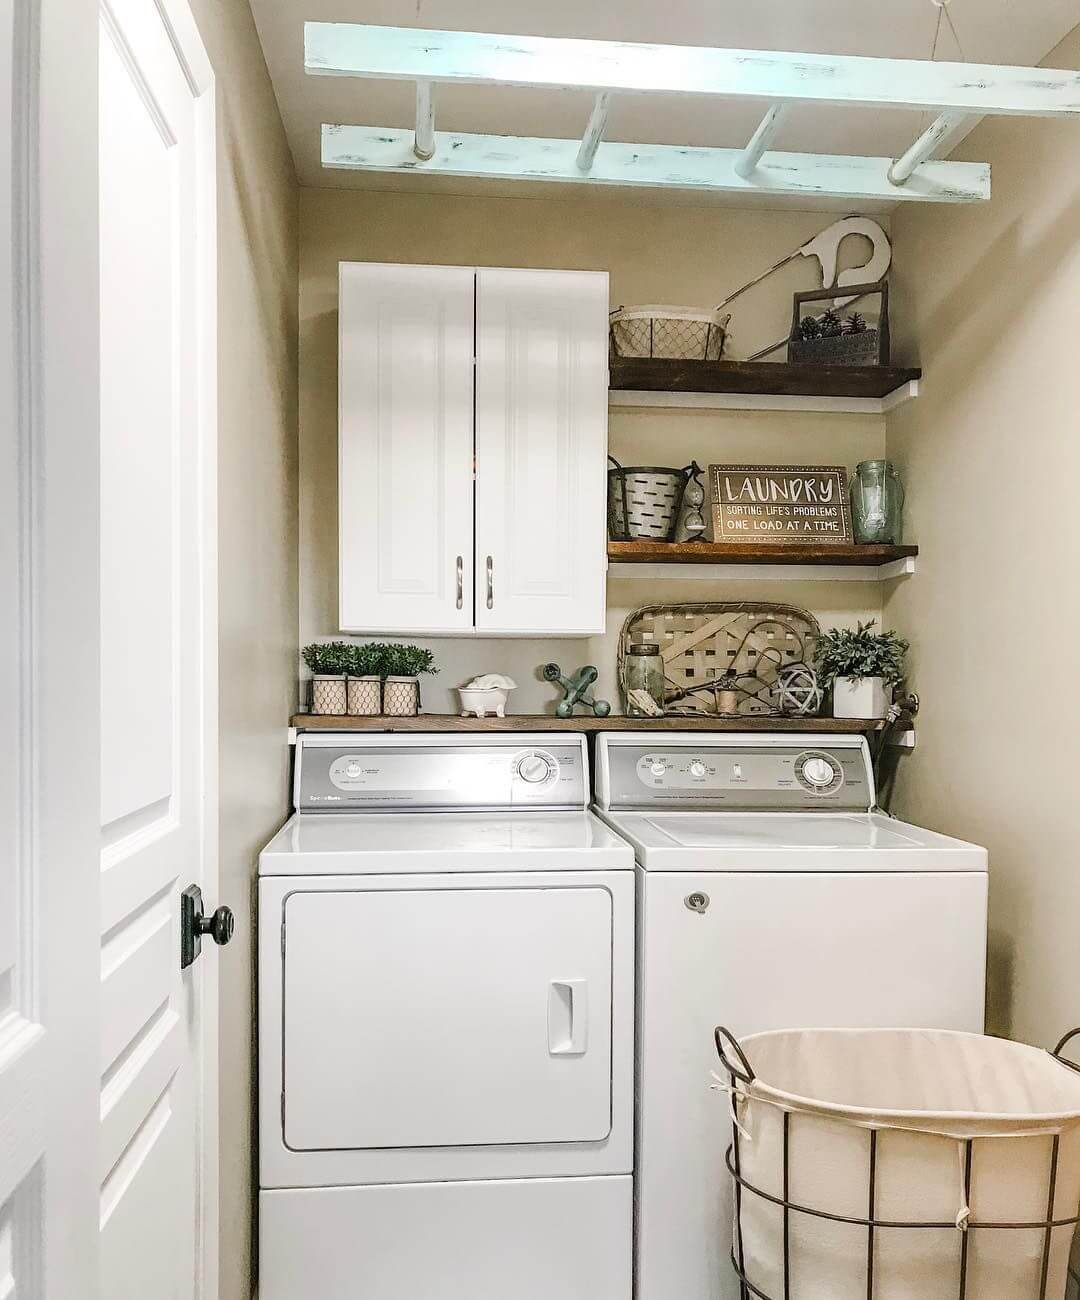 Marvelous small laundry room ideas and photos